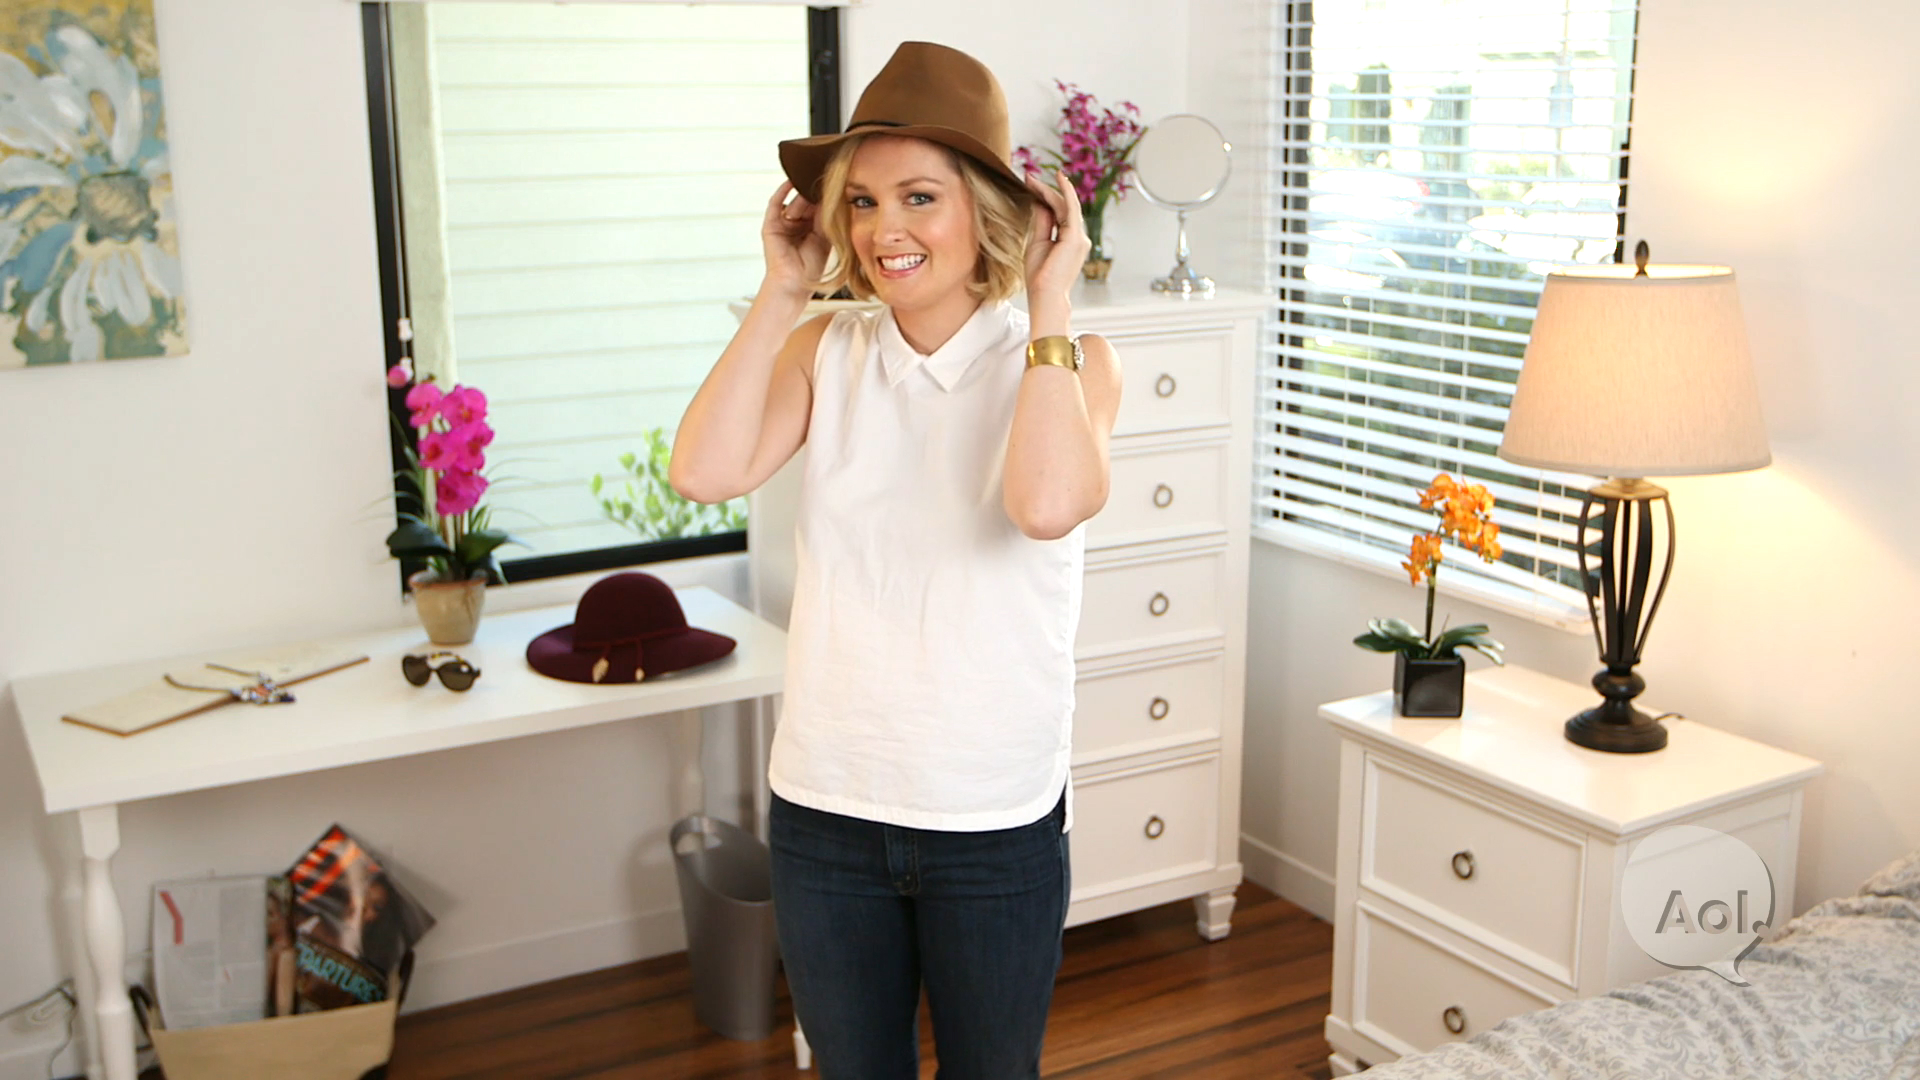 Get the Look: Styling a Fedora